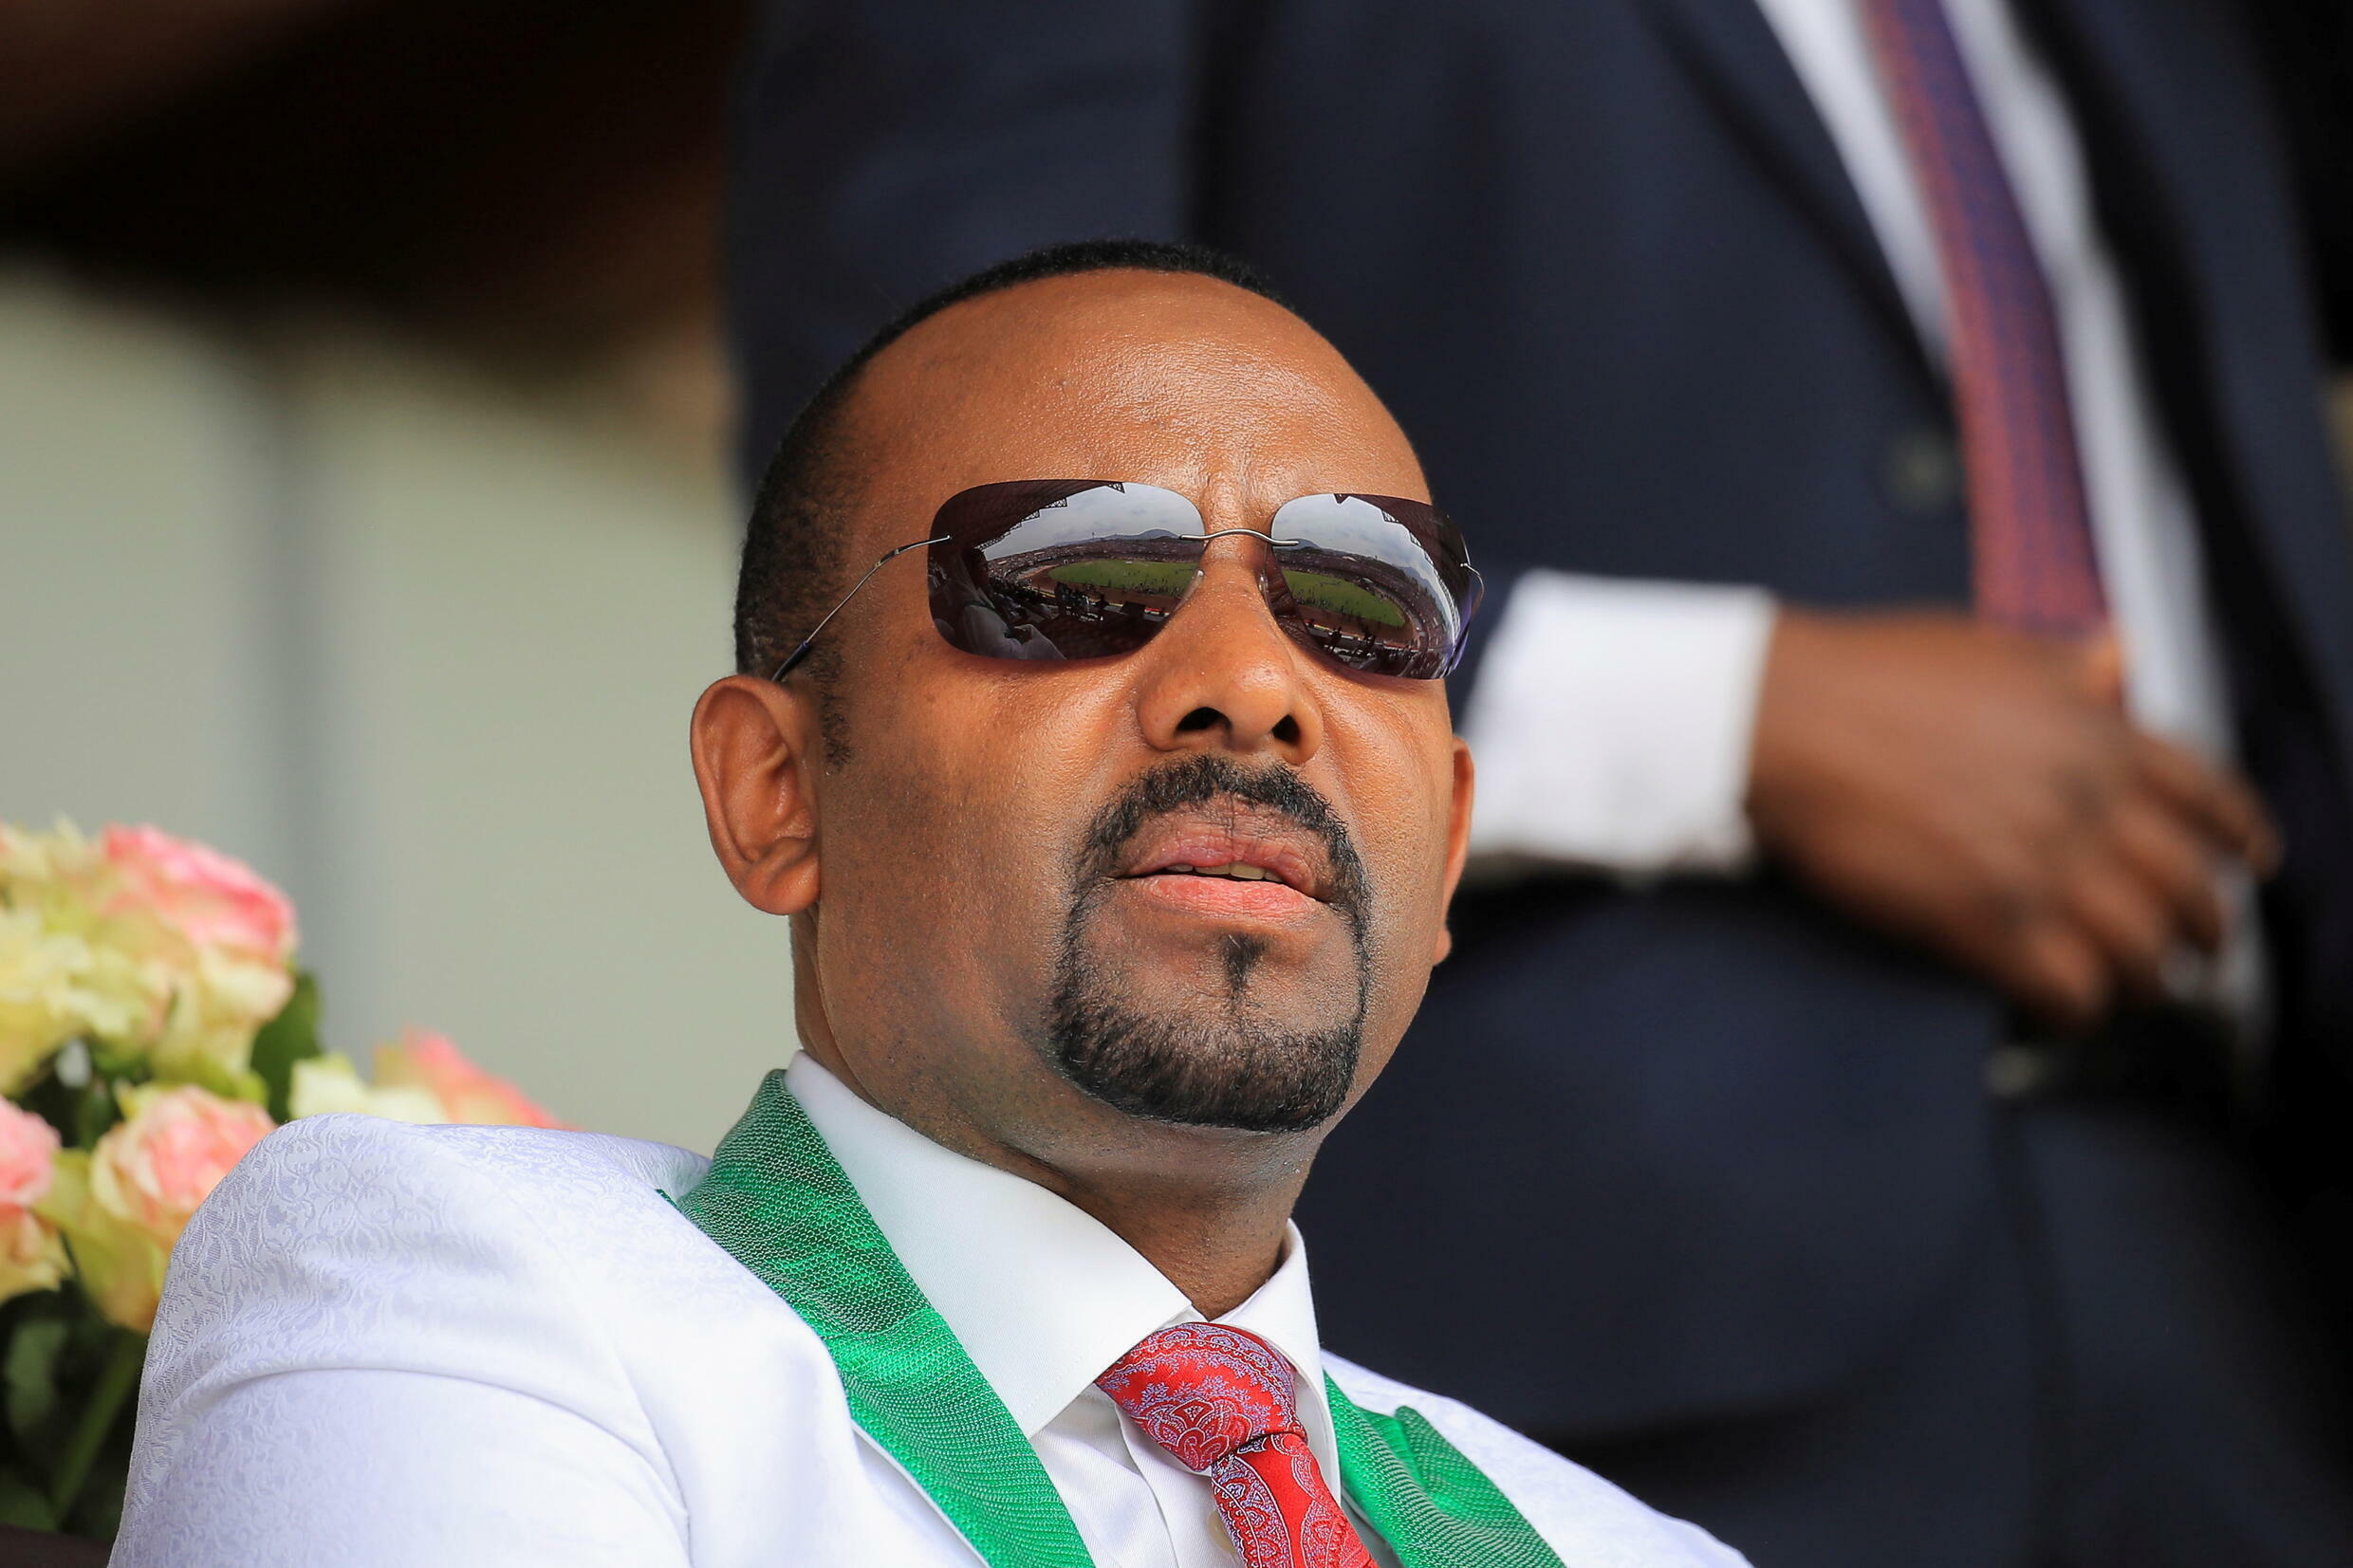 2021-06-16T114459Z_1221853903_RC2M1O9H6IFT_RTRMADP_3_ETHIOPIA-ELECTION-ABIY